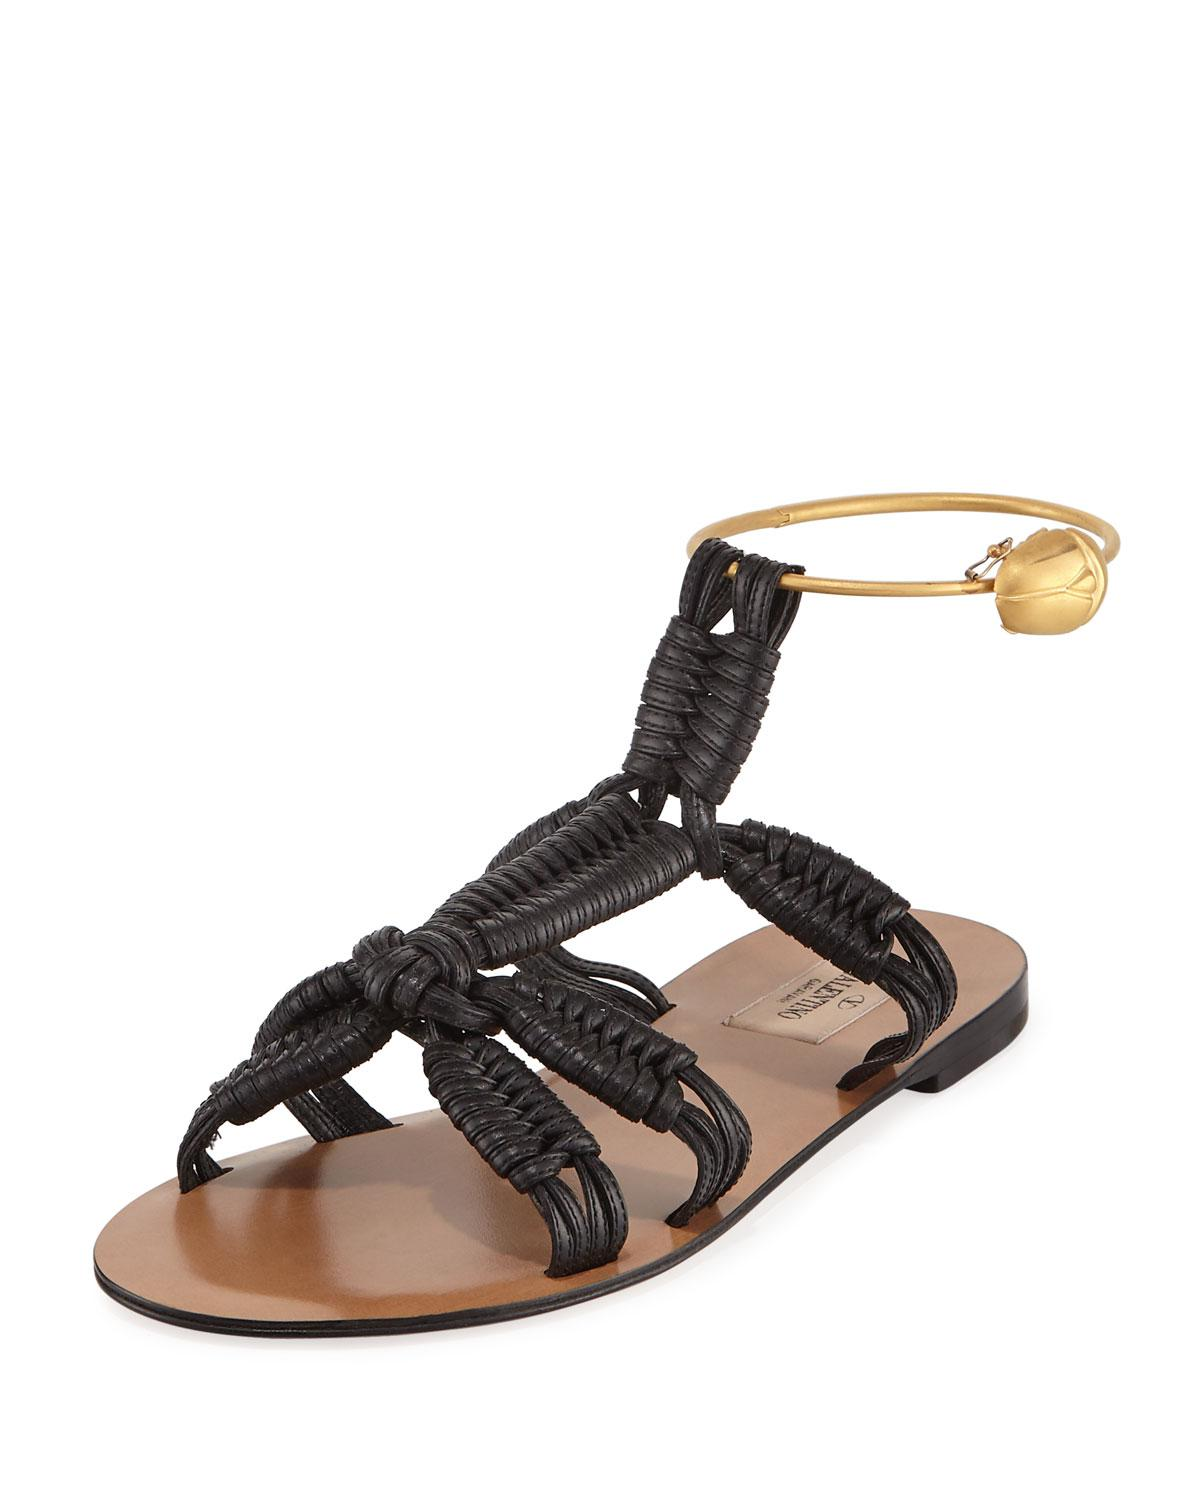 18f28376e259 Lyst - Valentino Braided Leather Ankle-ring Sandals in Black